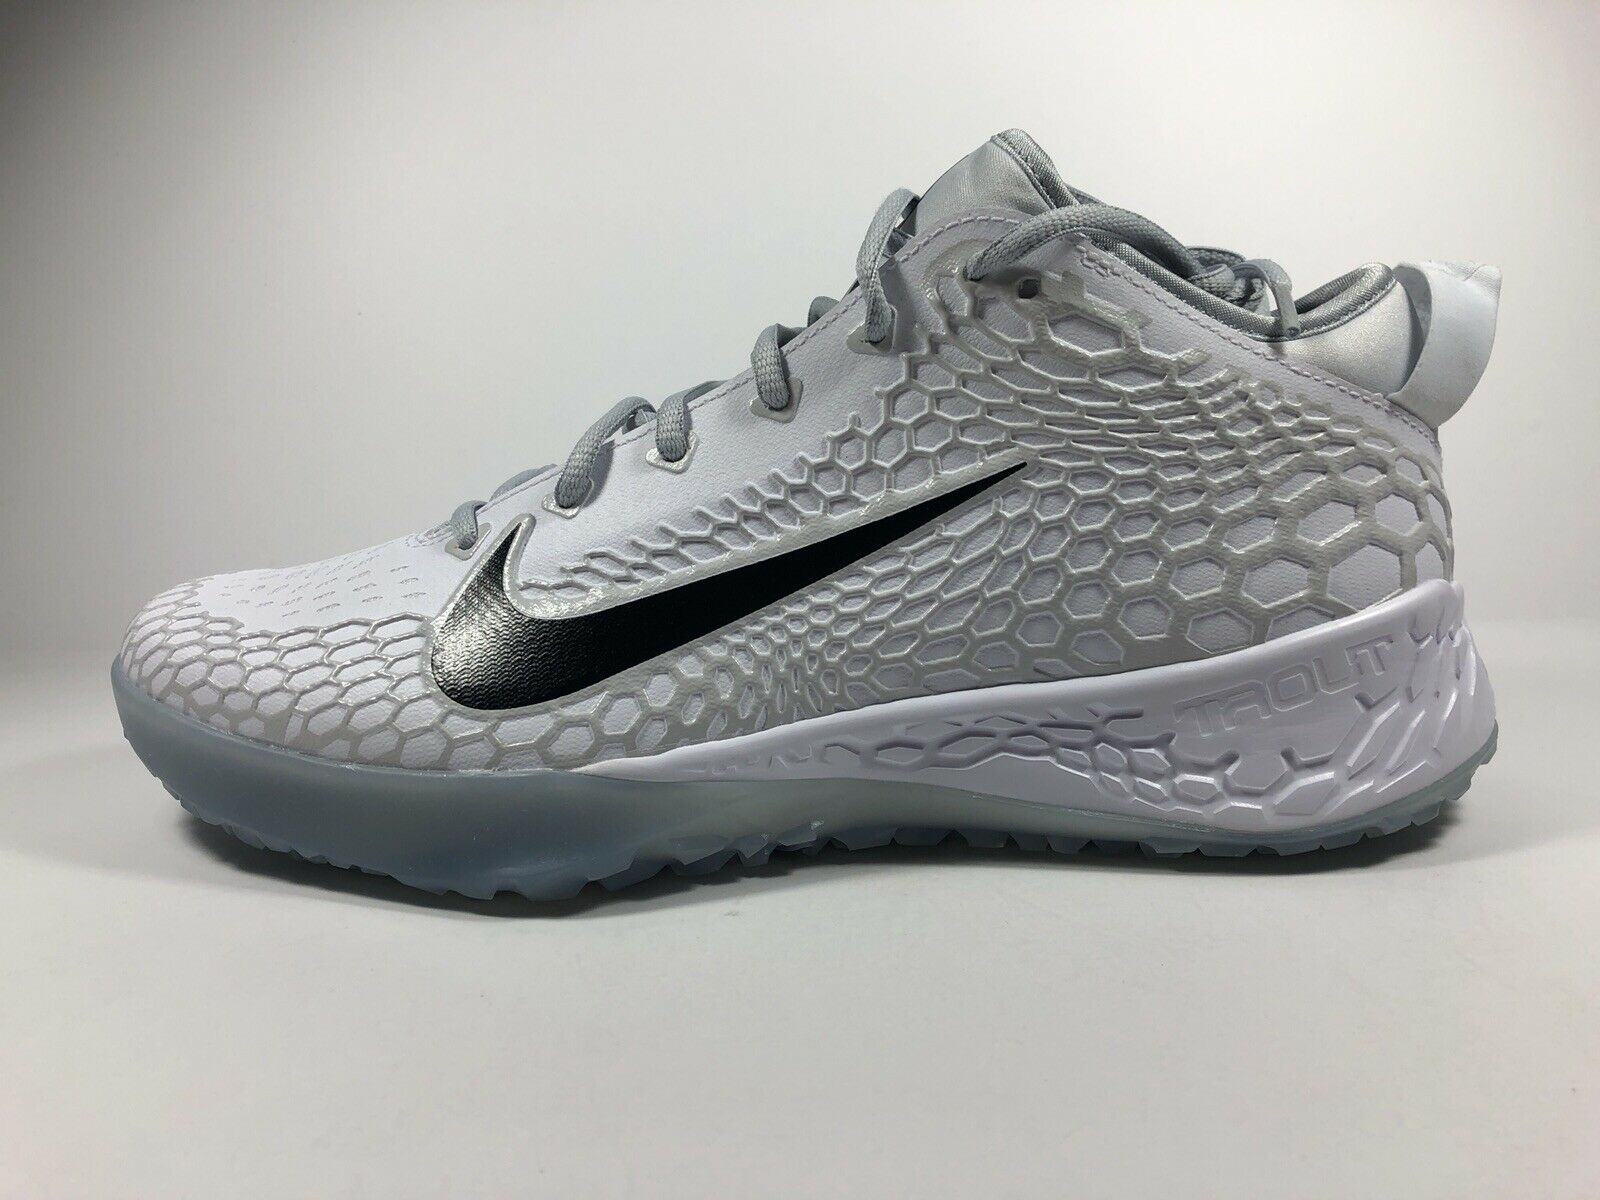 347999ad73 Nike Zoom Trout 5 Turf White Black Pure Platinum Size 10.5 AH3374 100 Force  ntjvgg6399-Athletic Shoes